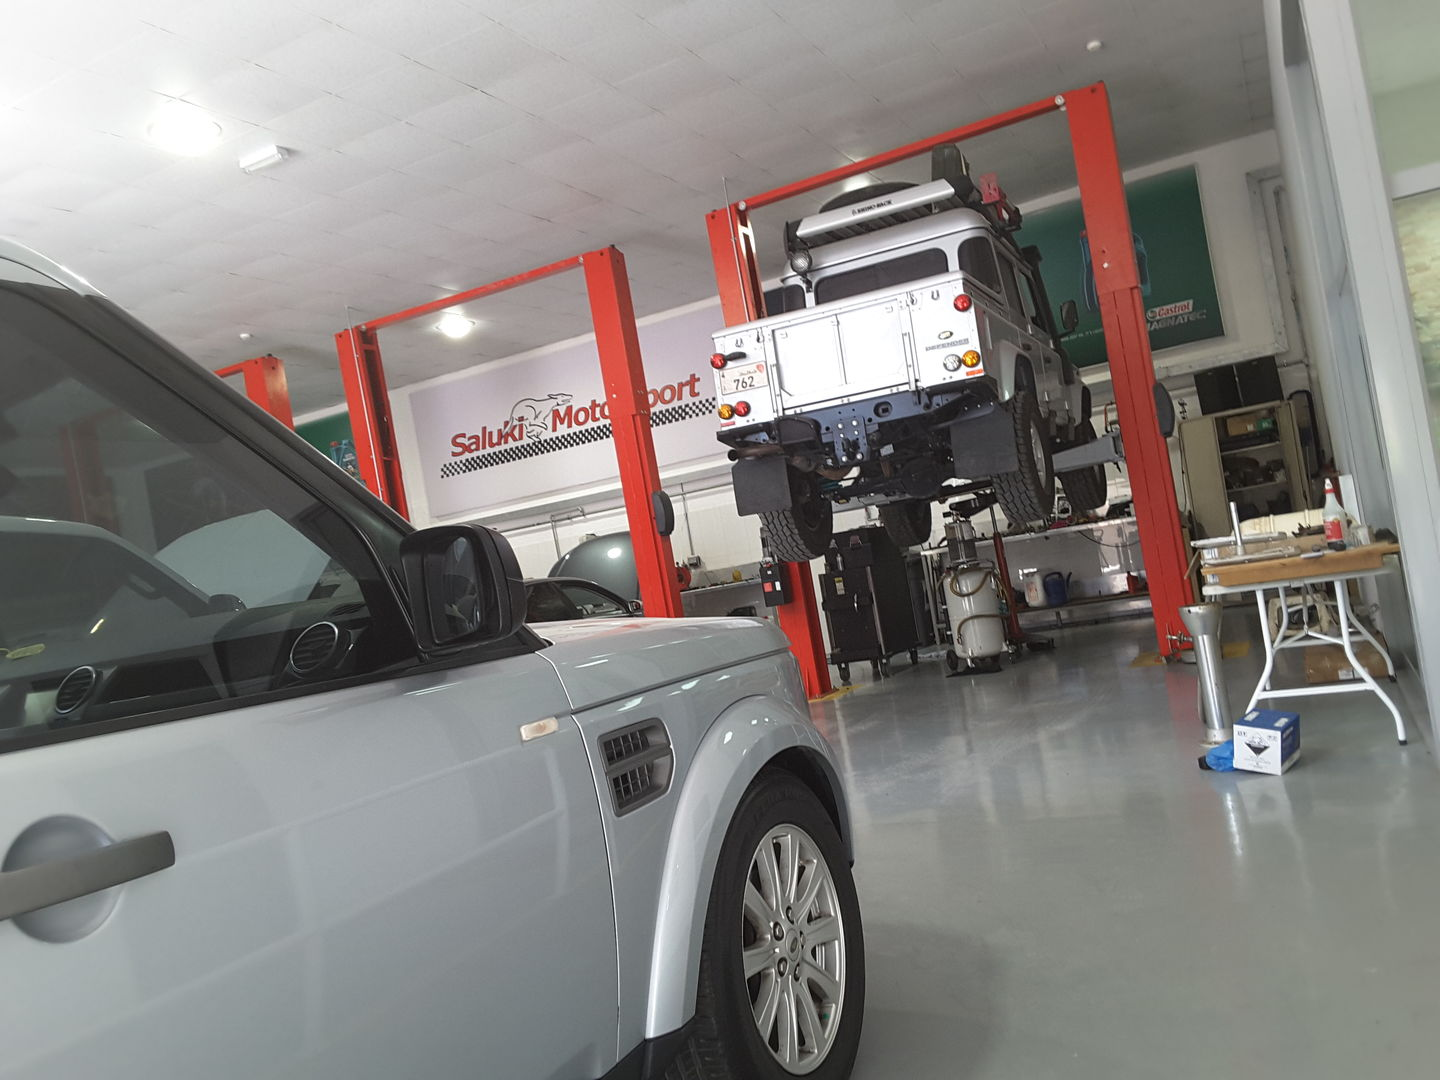 HiDubai-business-saluki-motorsport-transport-vehicle-services-car-assistance-repair-al-quoz-industrial-3-dubai-2